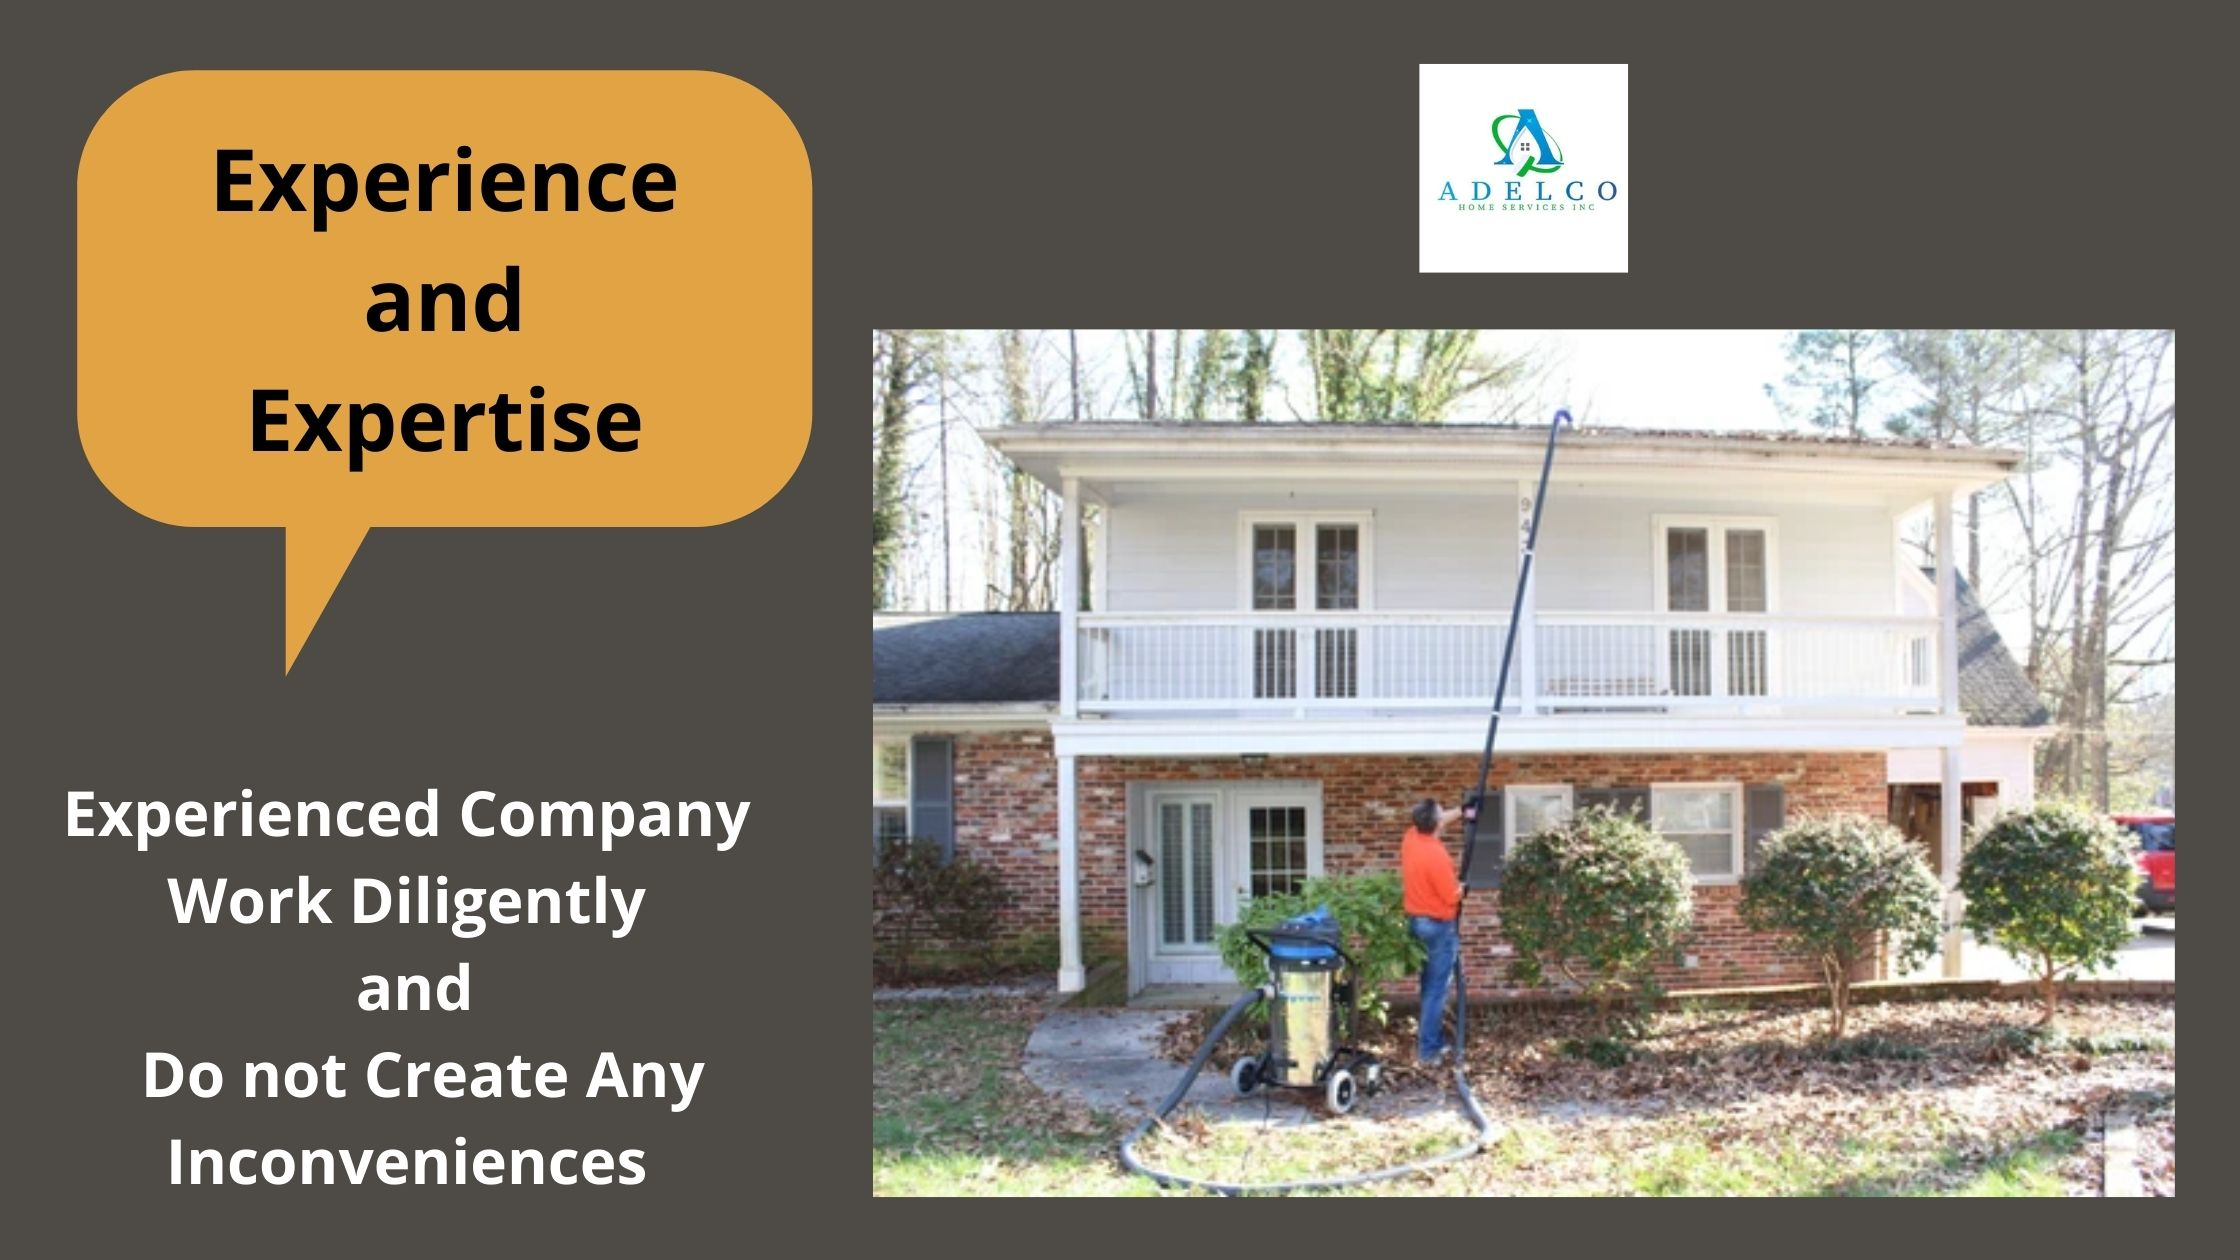 Experience and Expertise Gutter Cleaners